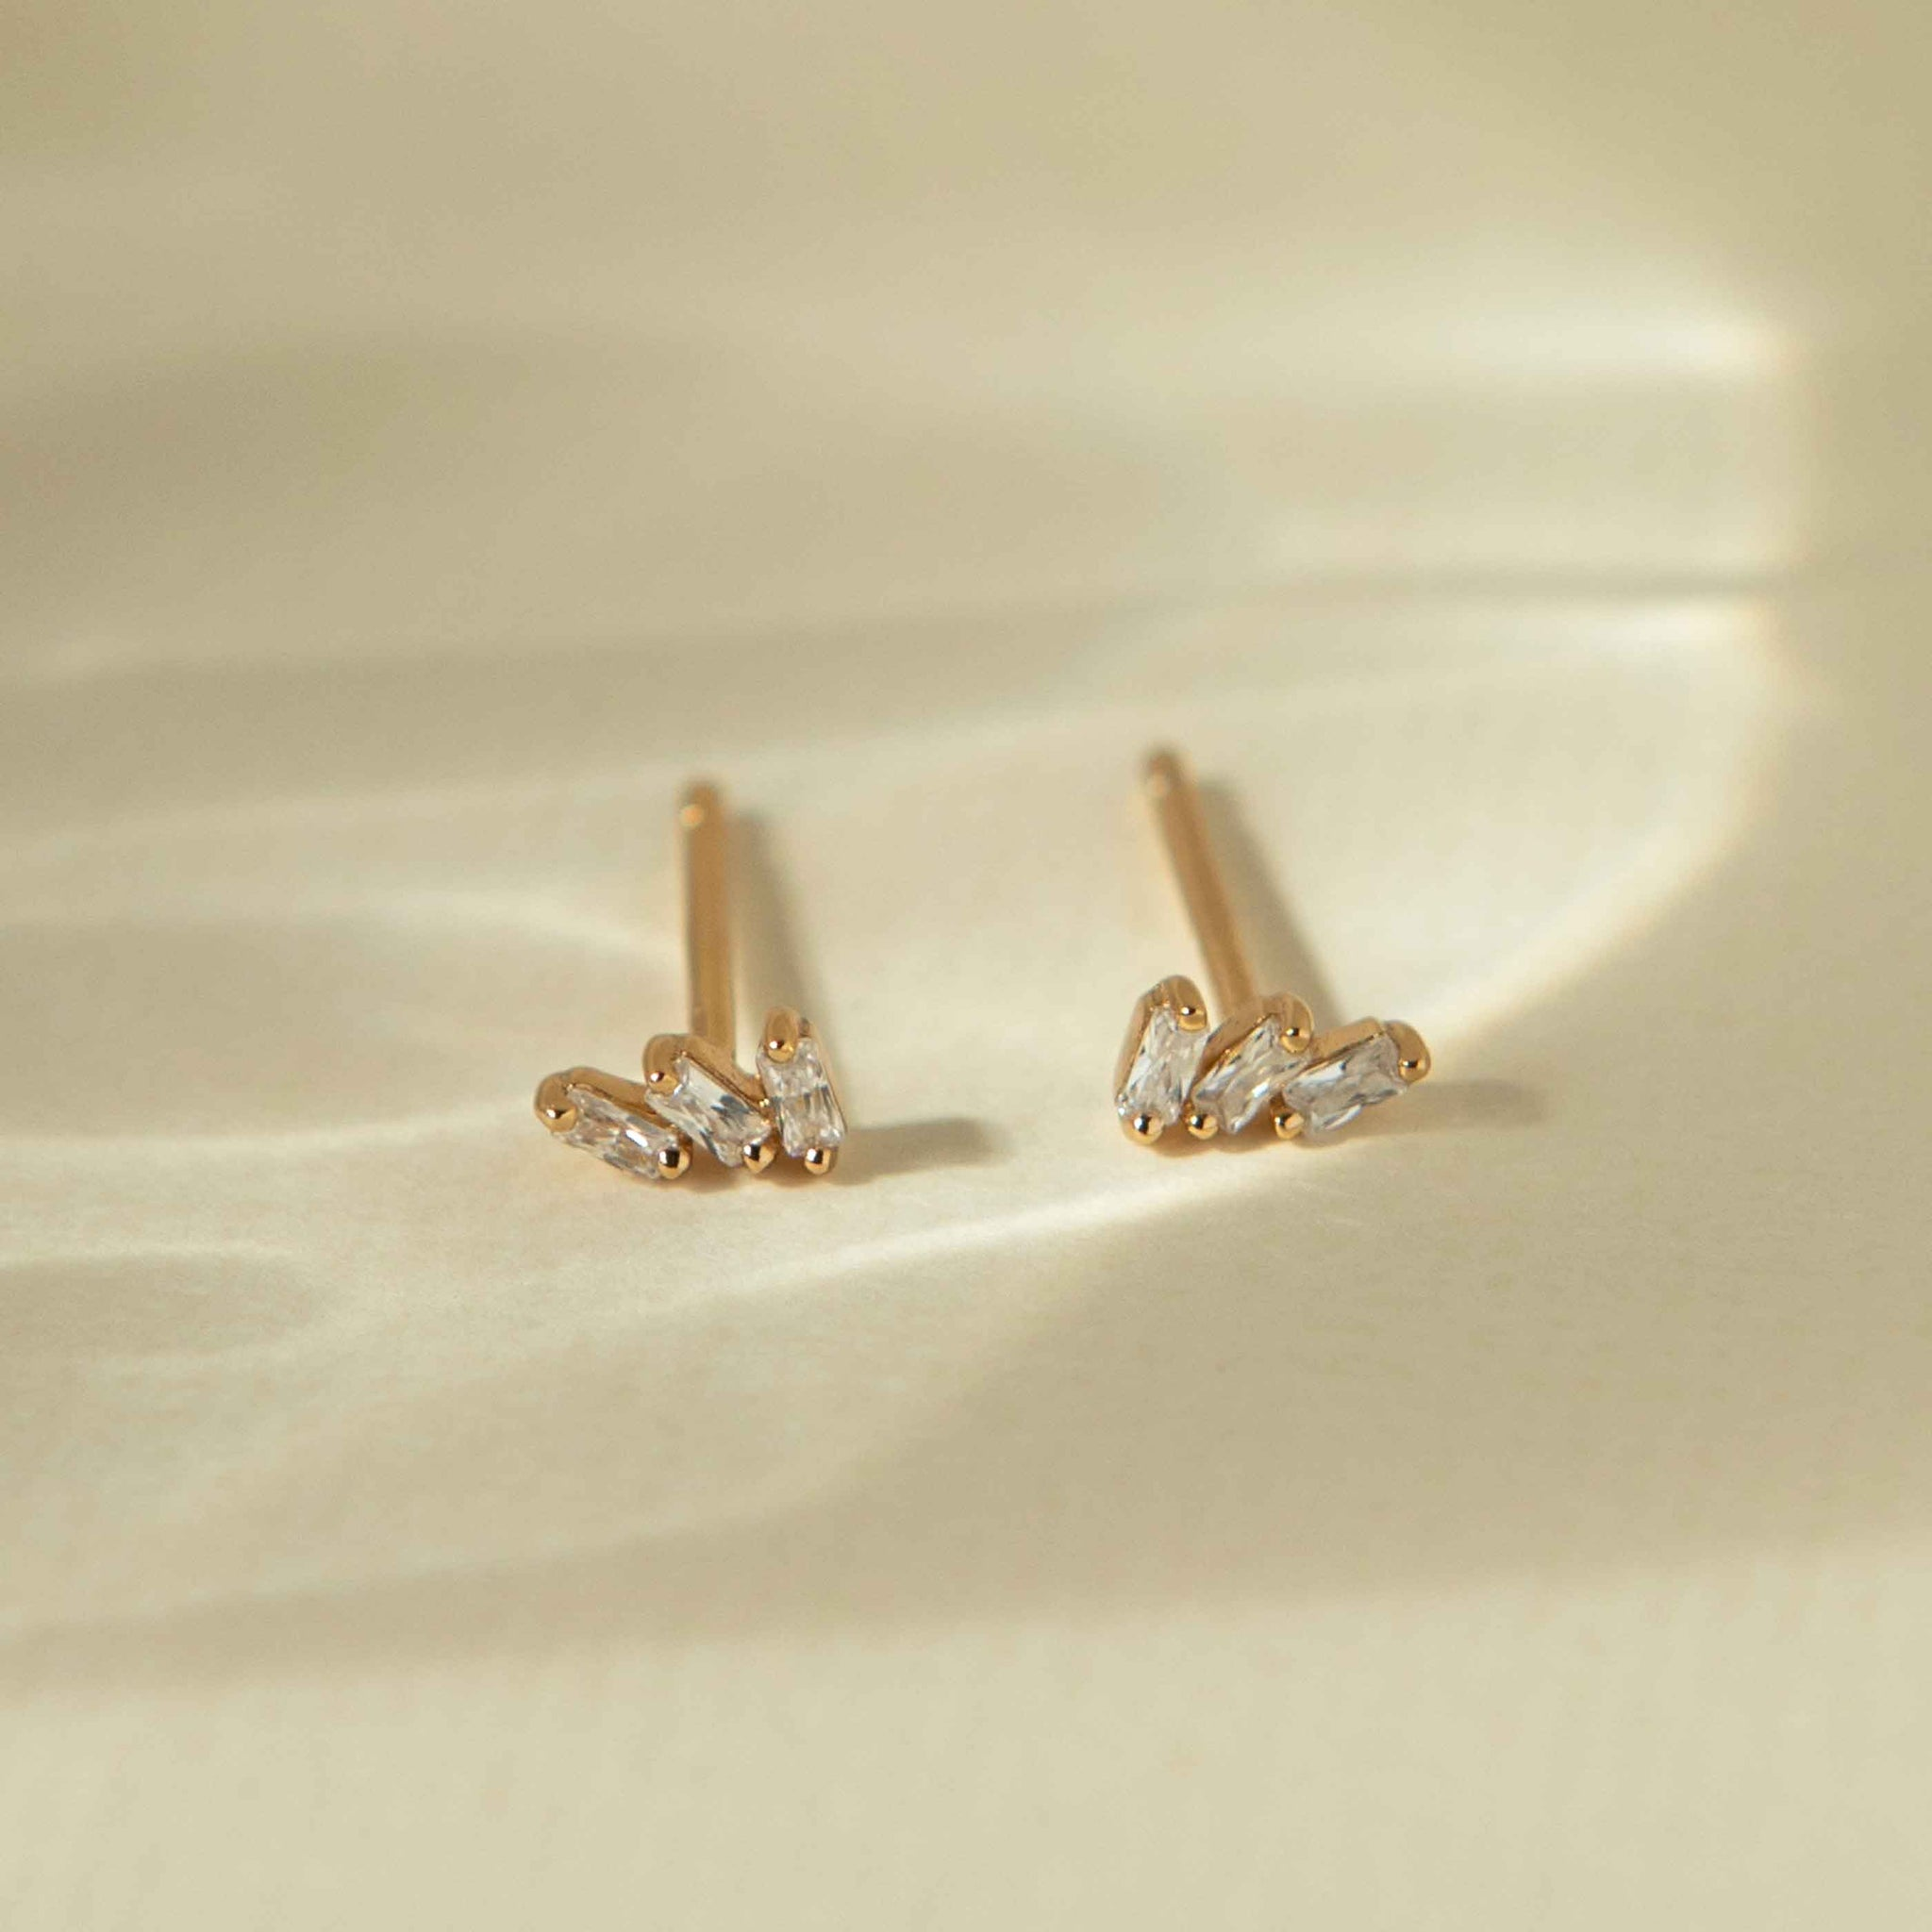 Baguette Crystal Stud Earrings in Gold